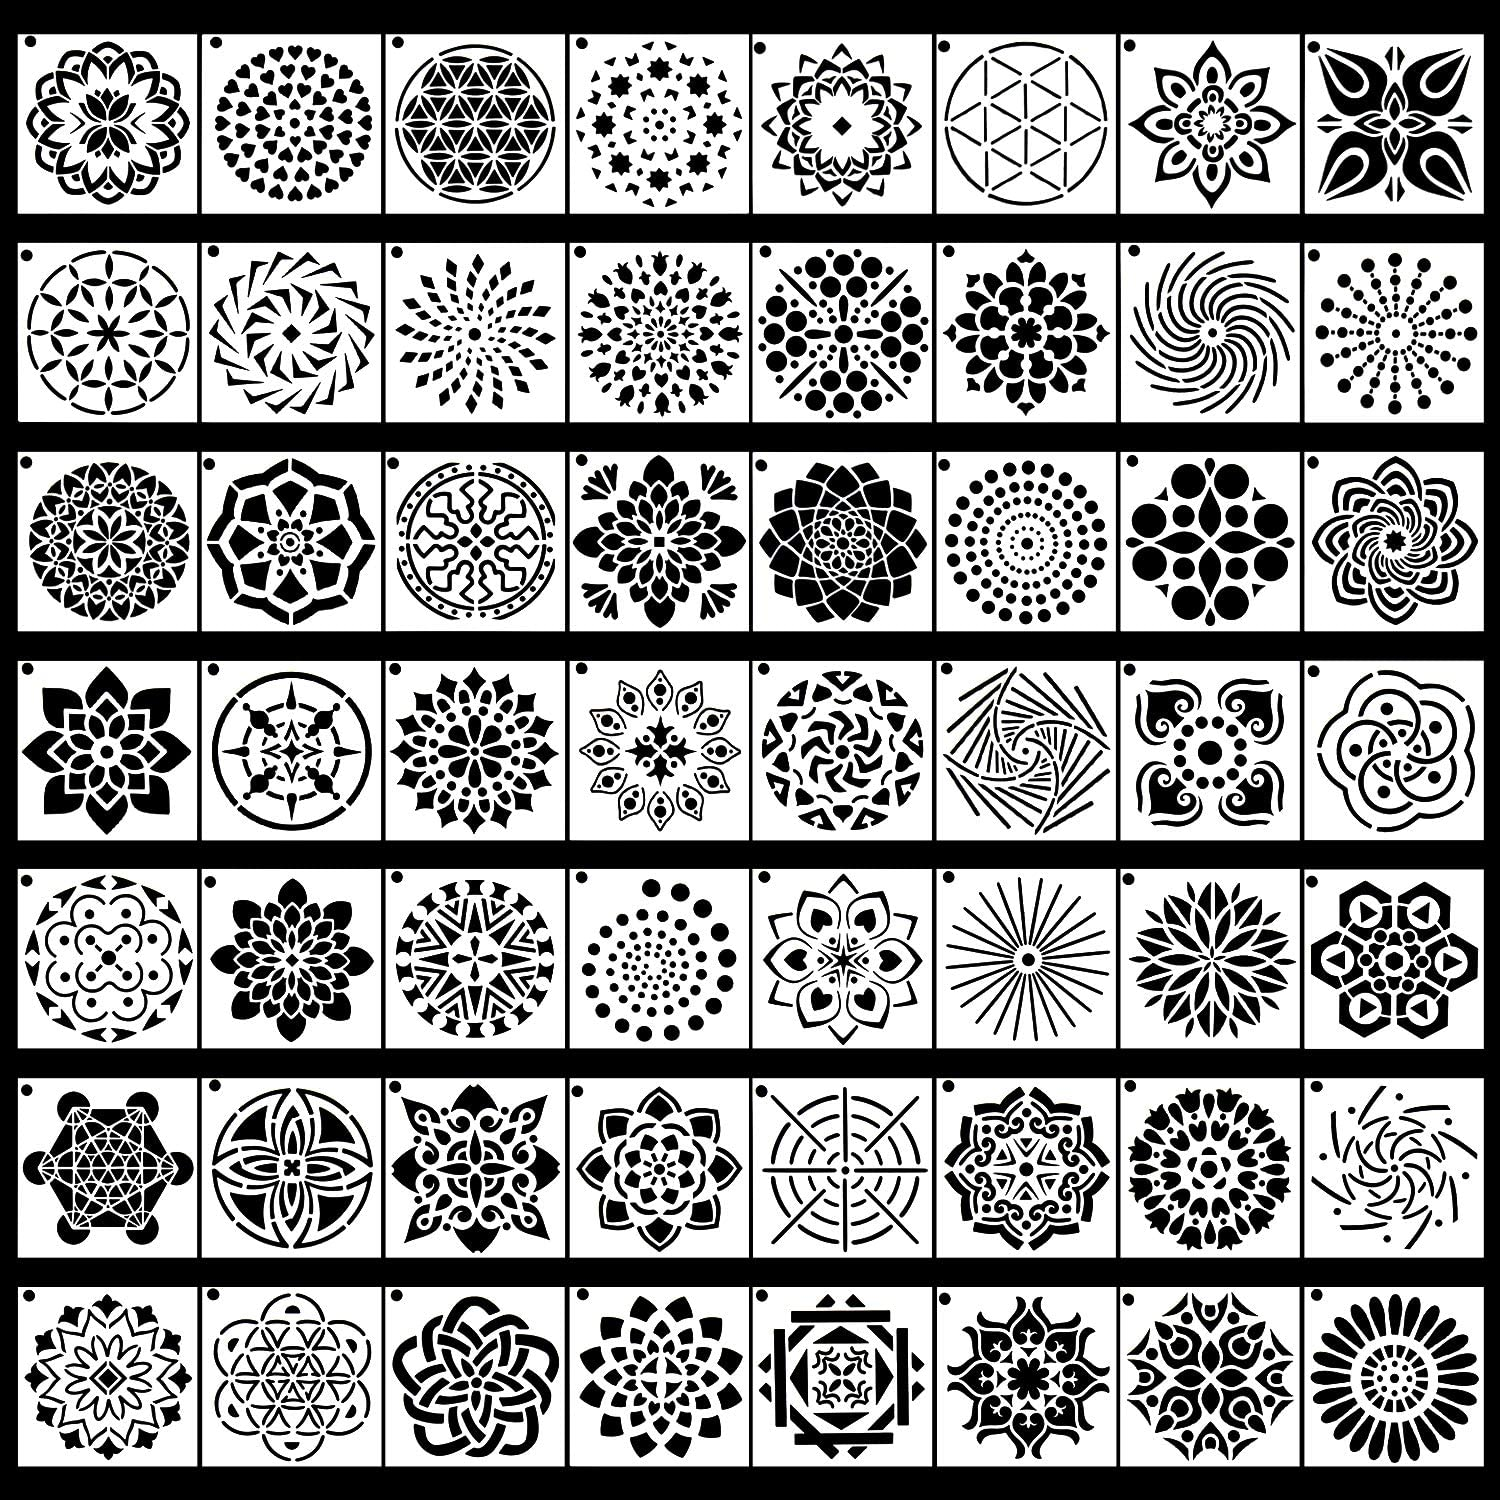 56 Pack Mandala Dot Painting Templates Stencils Perfect For DIY Rock Painting Art Projects 3.6x3.6 Inch 9X9 Cm